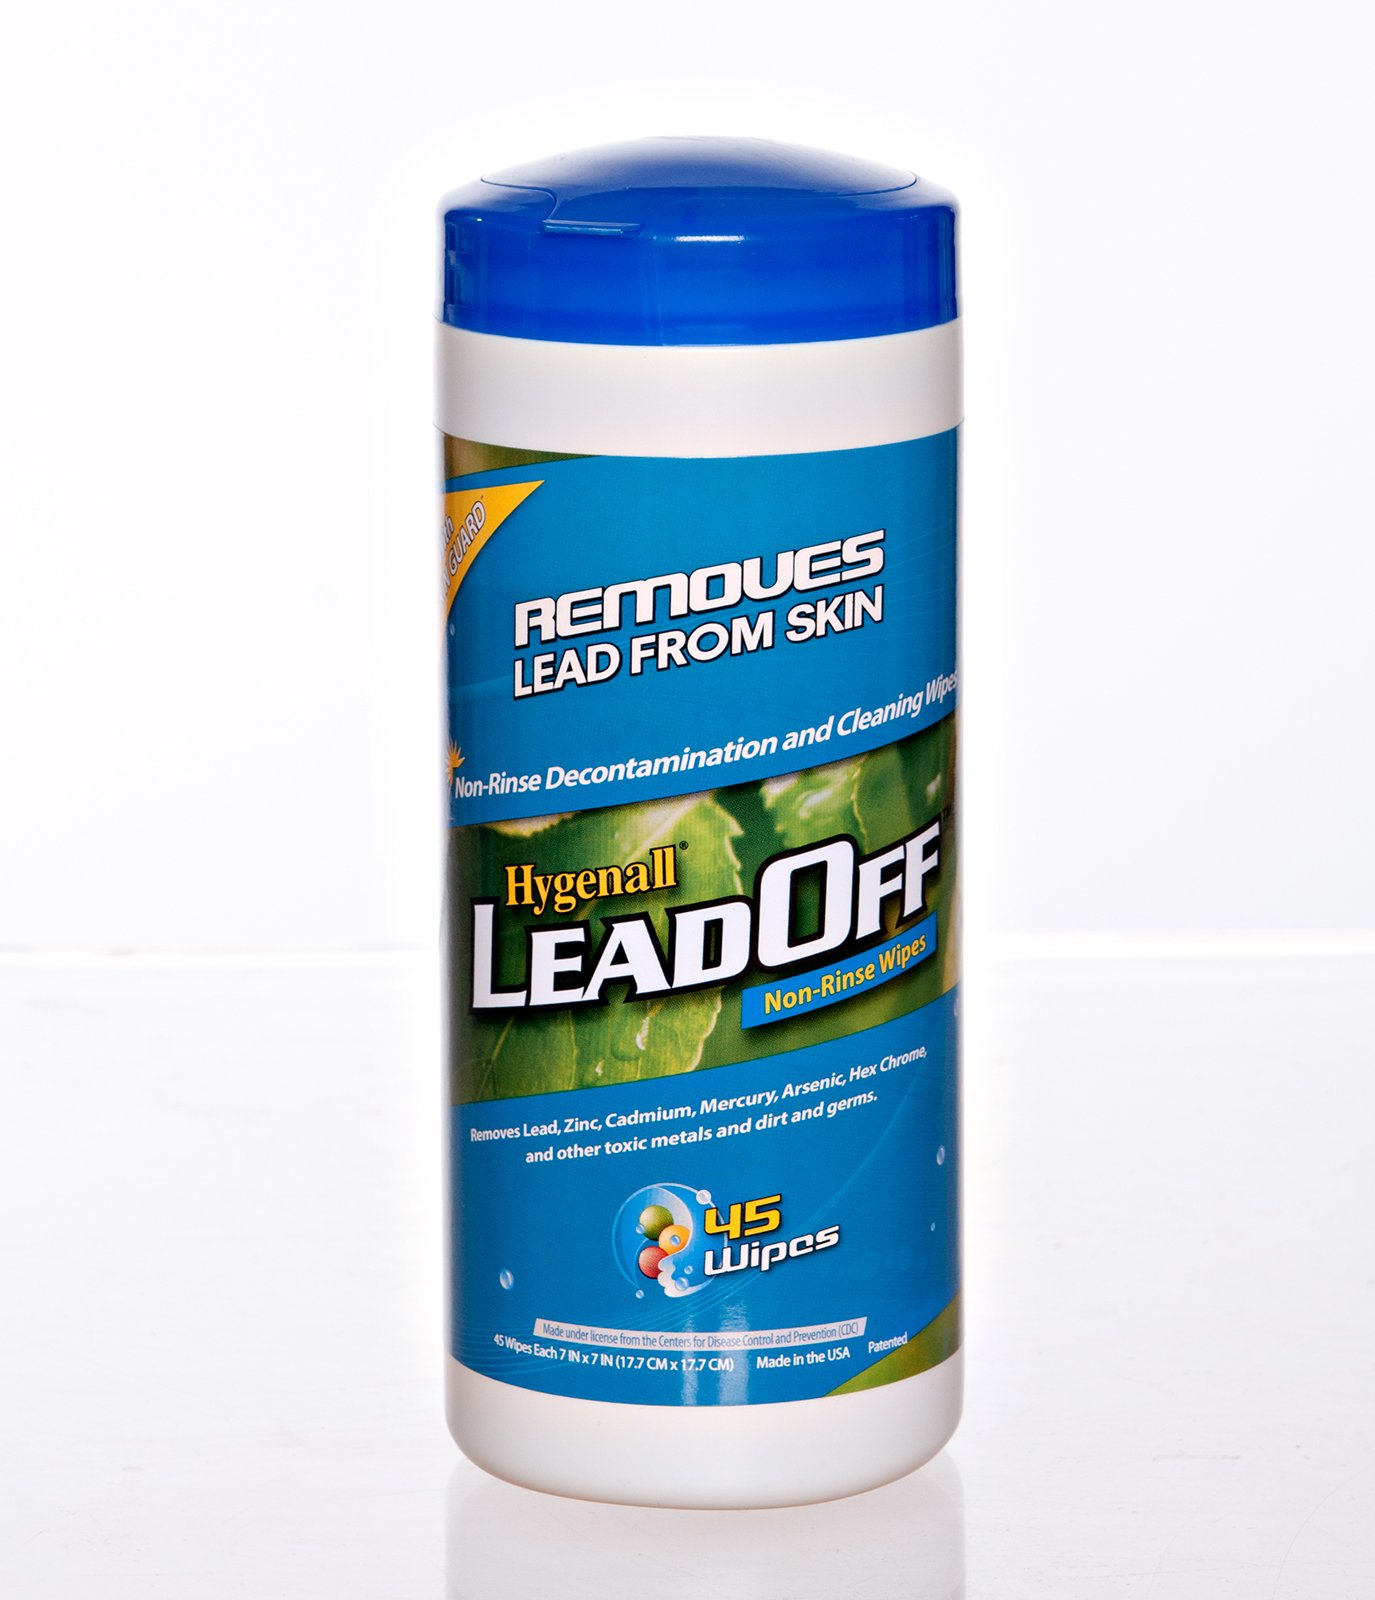 Hygenall LeadOff Lead Decontamination Non-Rinse Disposable Hand and Surface Wipes - 45 Wipe Canister - Australian Tactical Precision